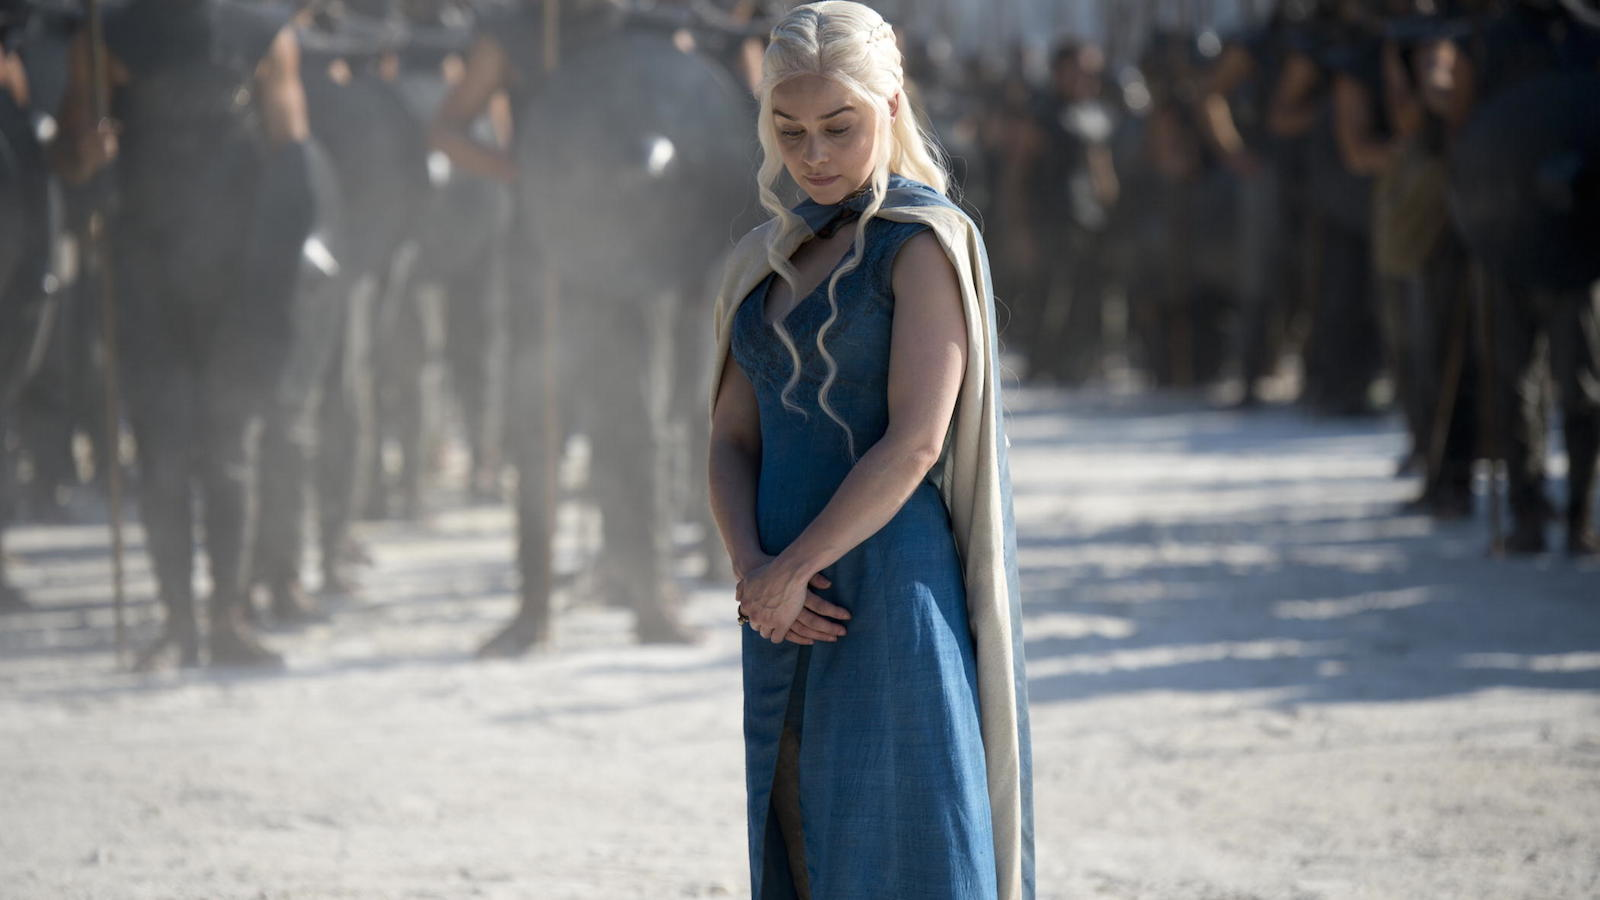 The 'Game of Thrones' premiere is coming. Here's a full season 4 refresher guide.